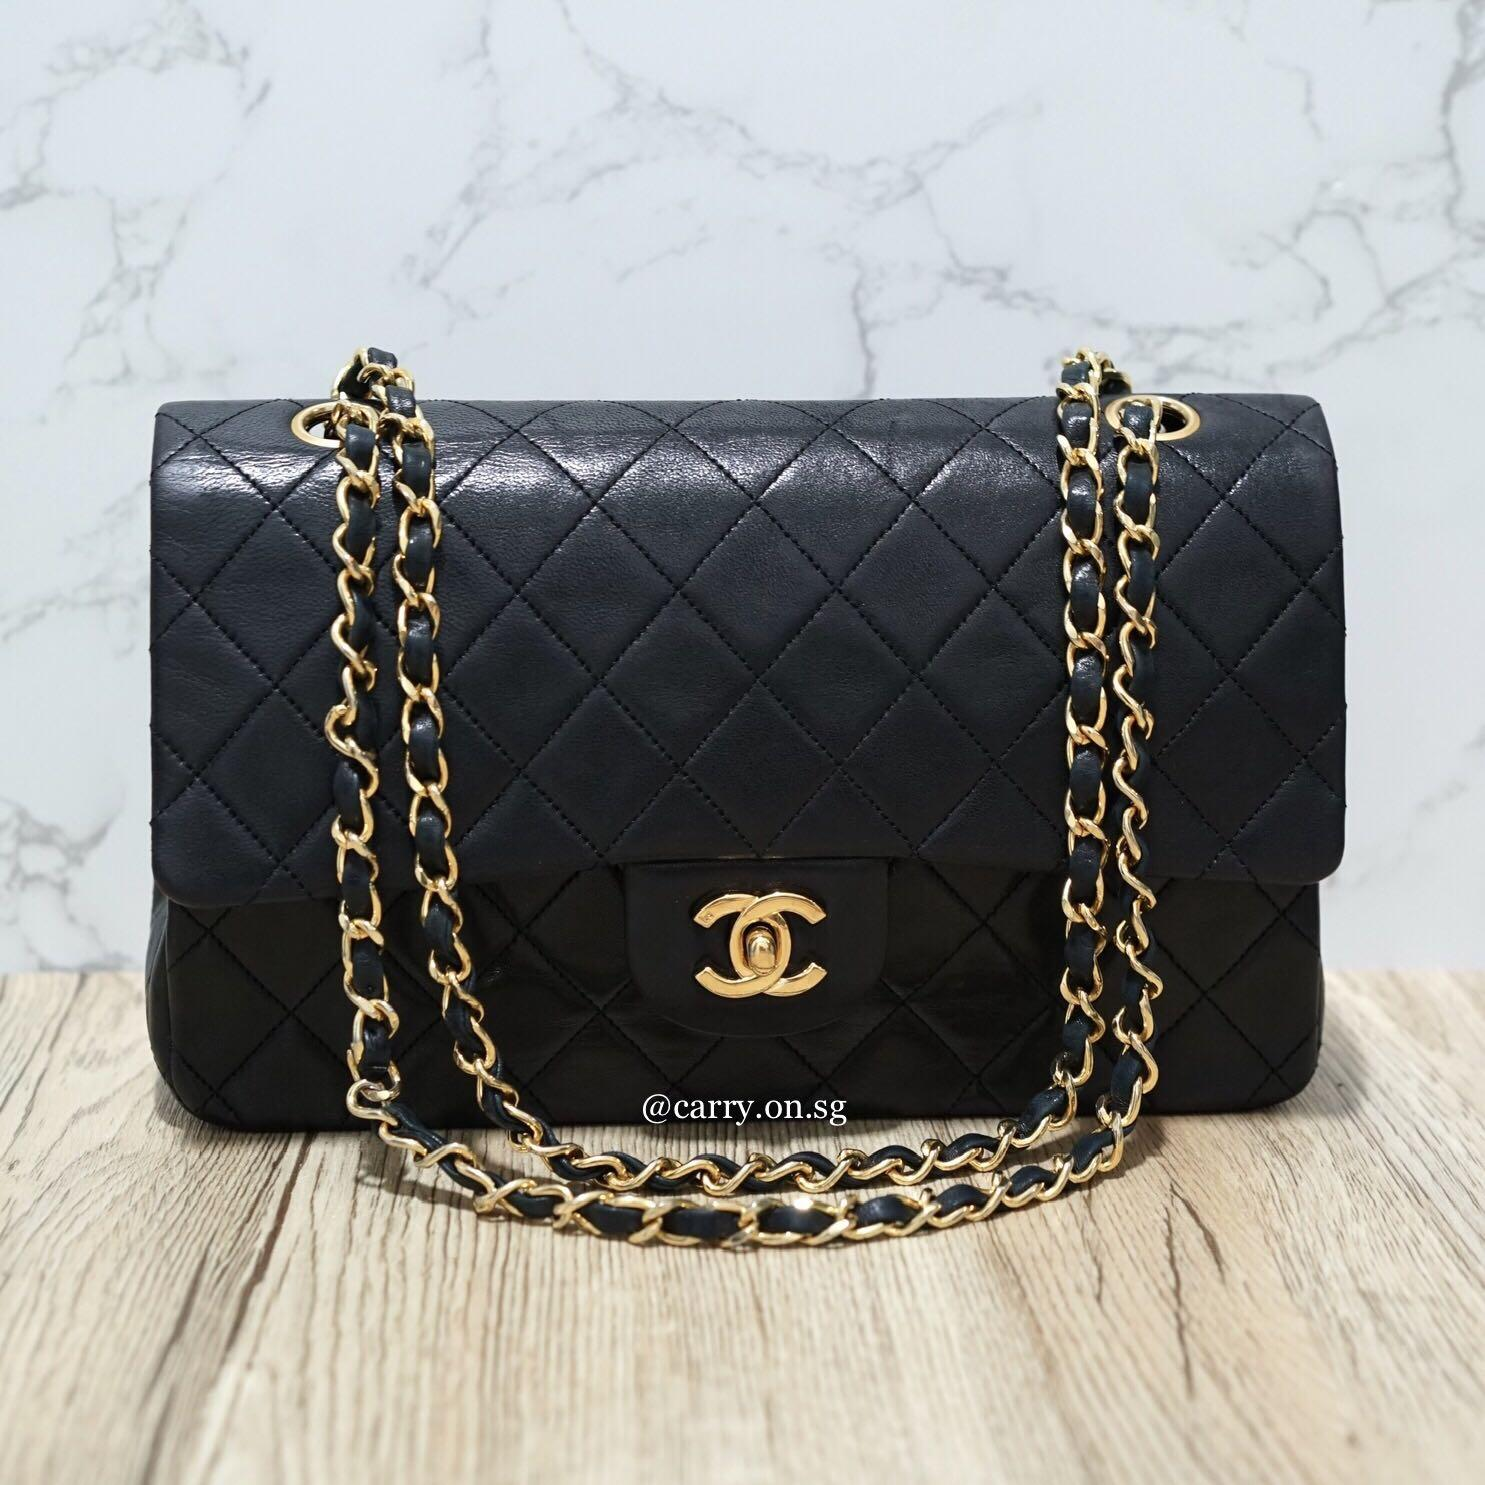 Chanel Classic 10in Medium Double Flap bag in Black Lambskin with 24k Goldhardware